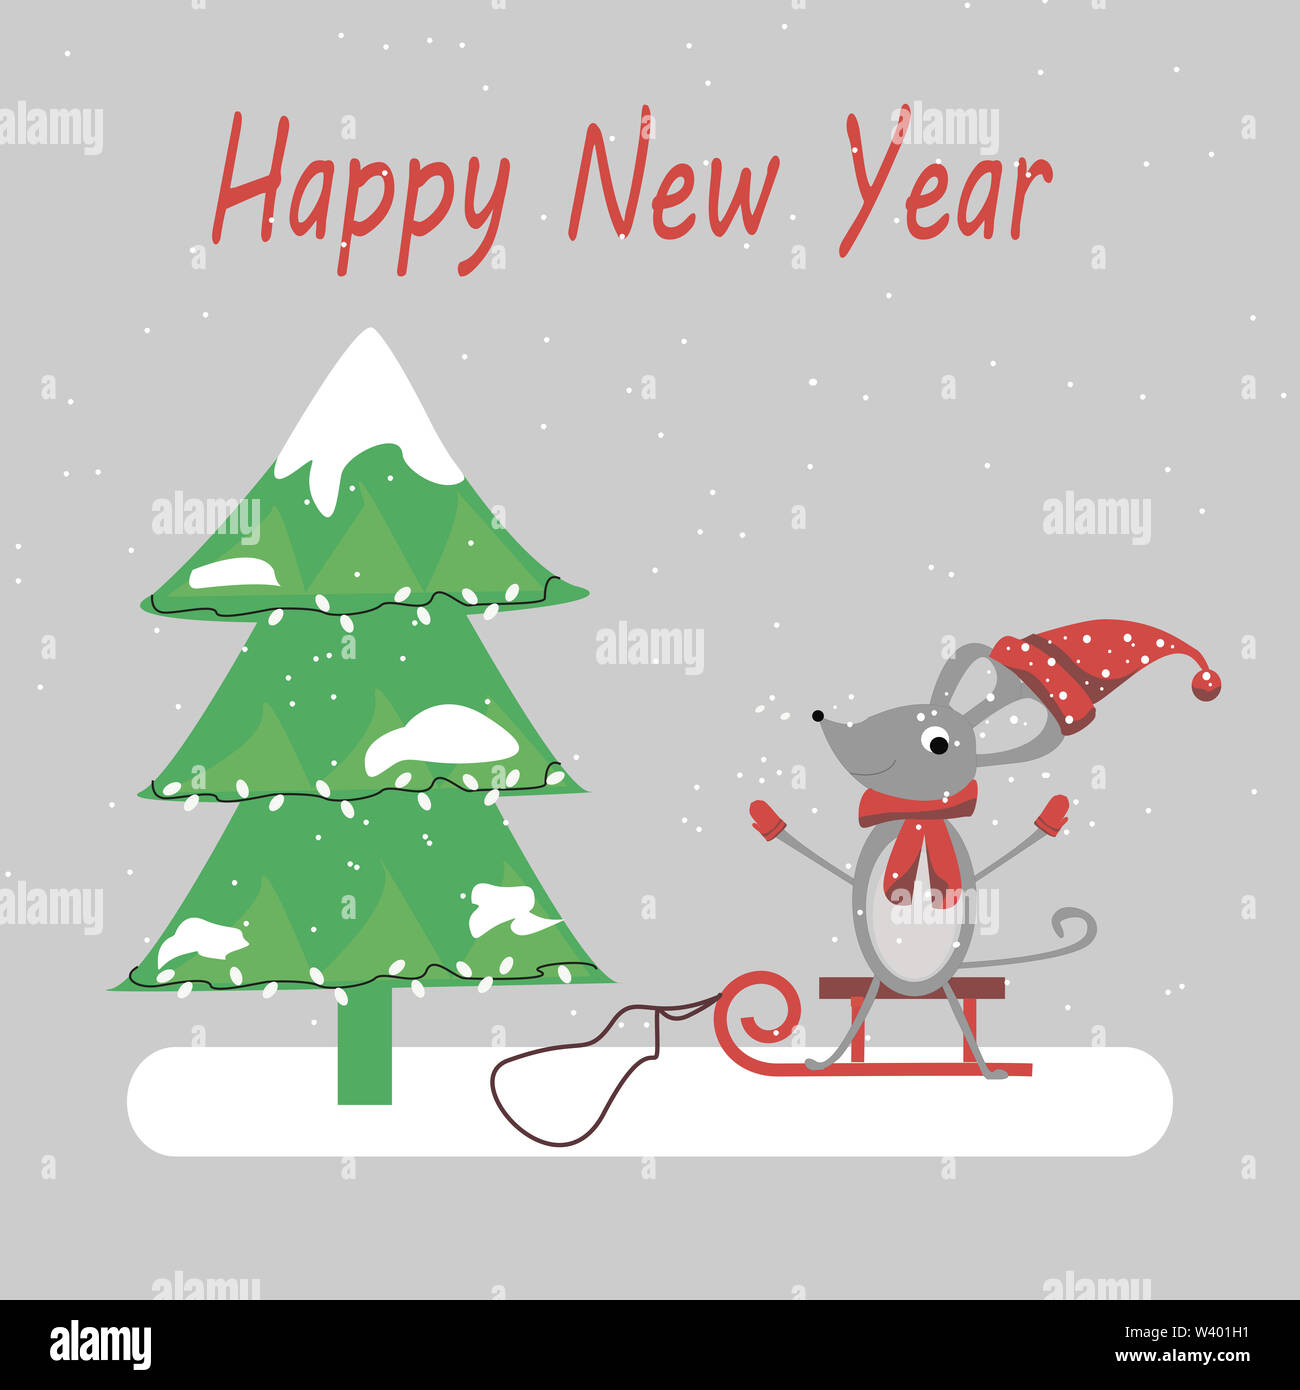 New Year. New Year 2020 and Christmas tree on background. Year of the rat or mouse. greeting card, concept of the new year. Stock Photo